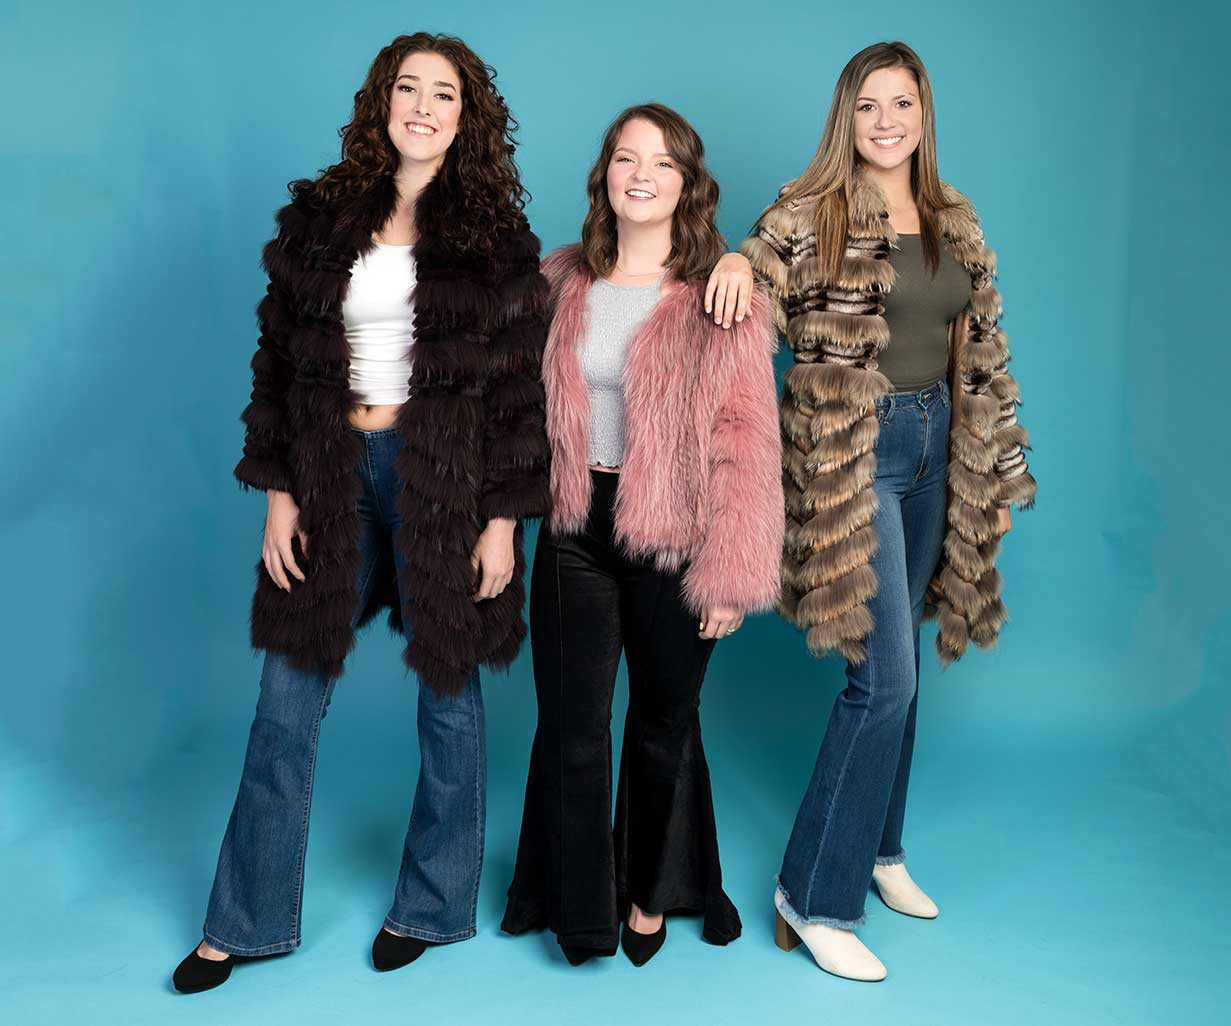 three women wearing midriff tops, furs, bell bottom jeans, and booties